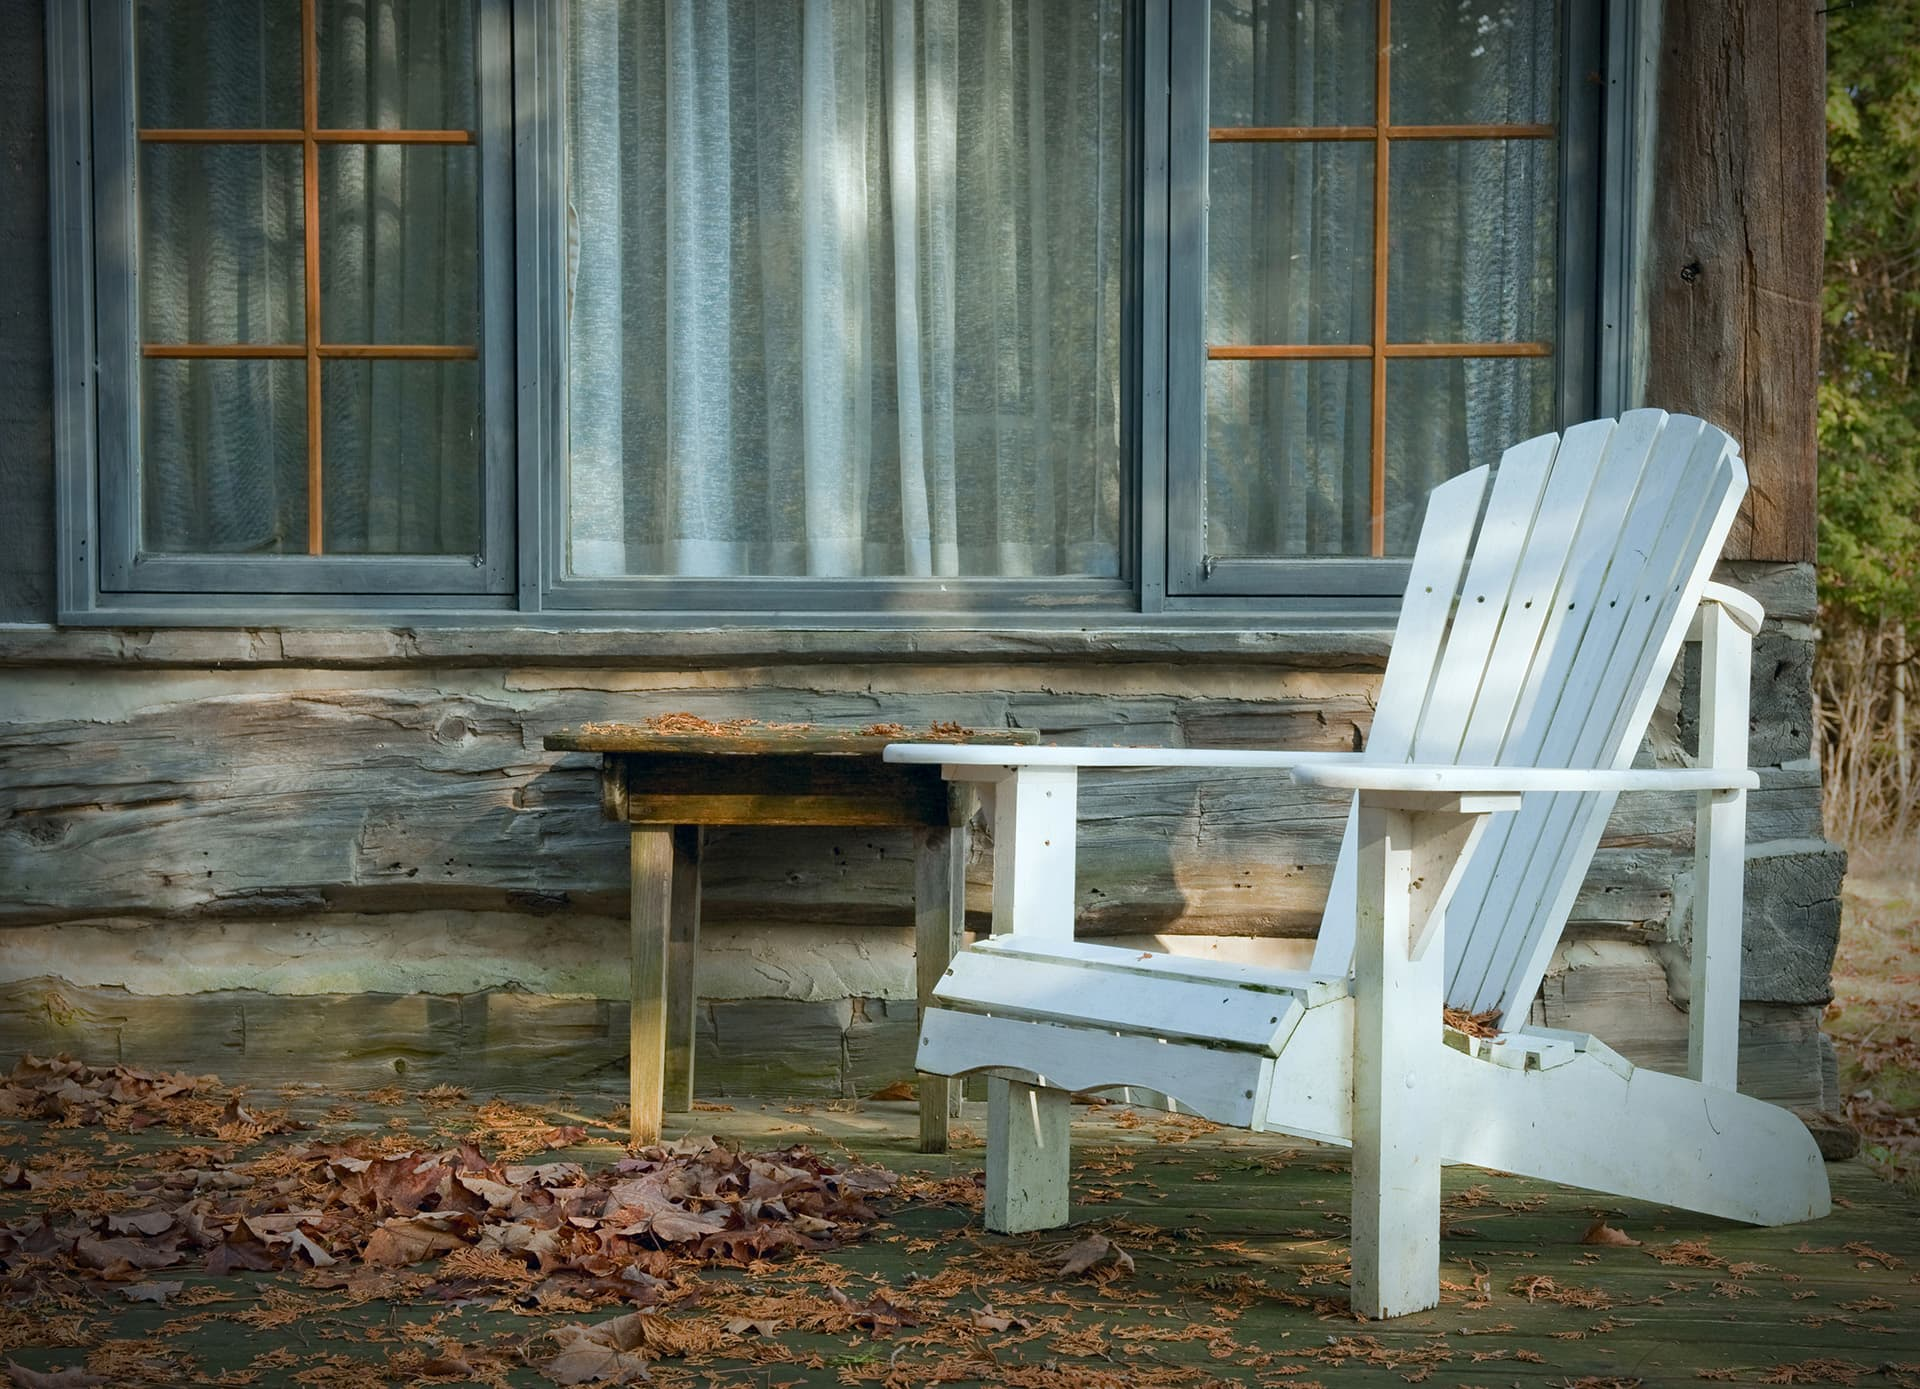 Seasonal insurance for cottage with Muskoka chair out front